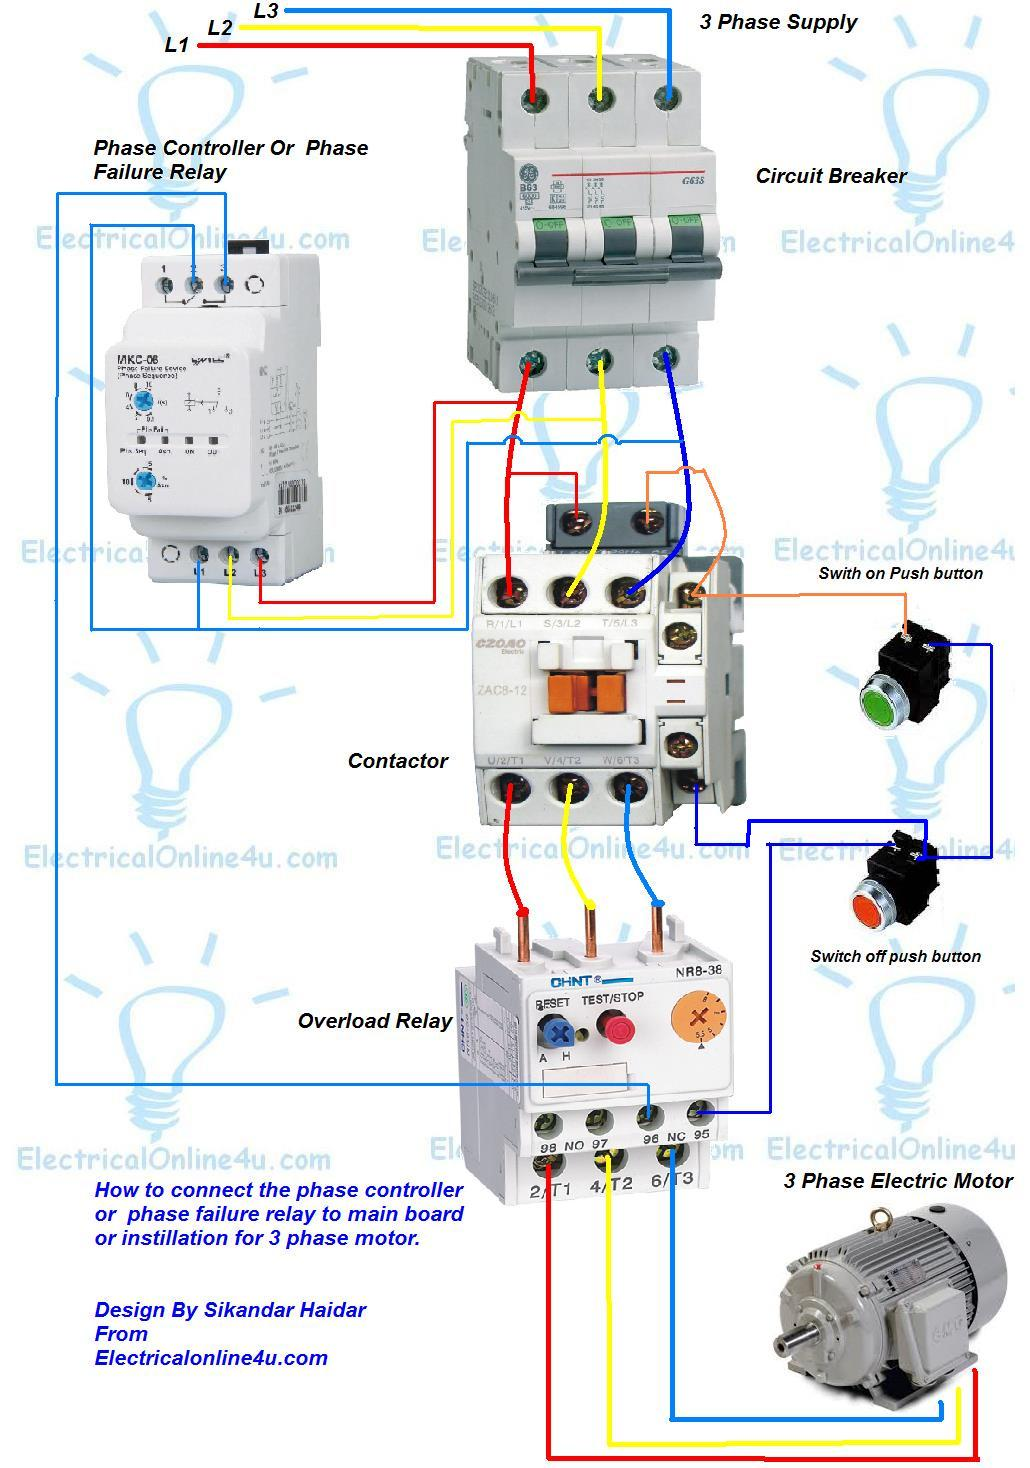 Phase%2Bfailure%2Brelay%2B %2Bphase%2Bcontroller%2Binstilaion%2Bin%2B3%2Bphase%2BMain%2Bboard%2Bor%2Bfor%2B3%2Bphase%2Bmotor phase controller wiring phase failure relay diagram electrical wiring diagram for contactor and overload at reclaimingppi.co